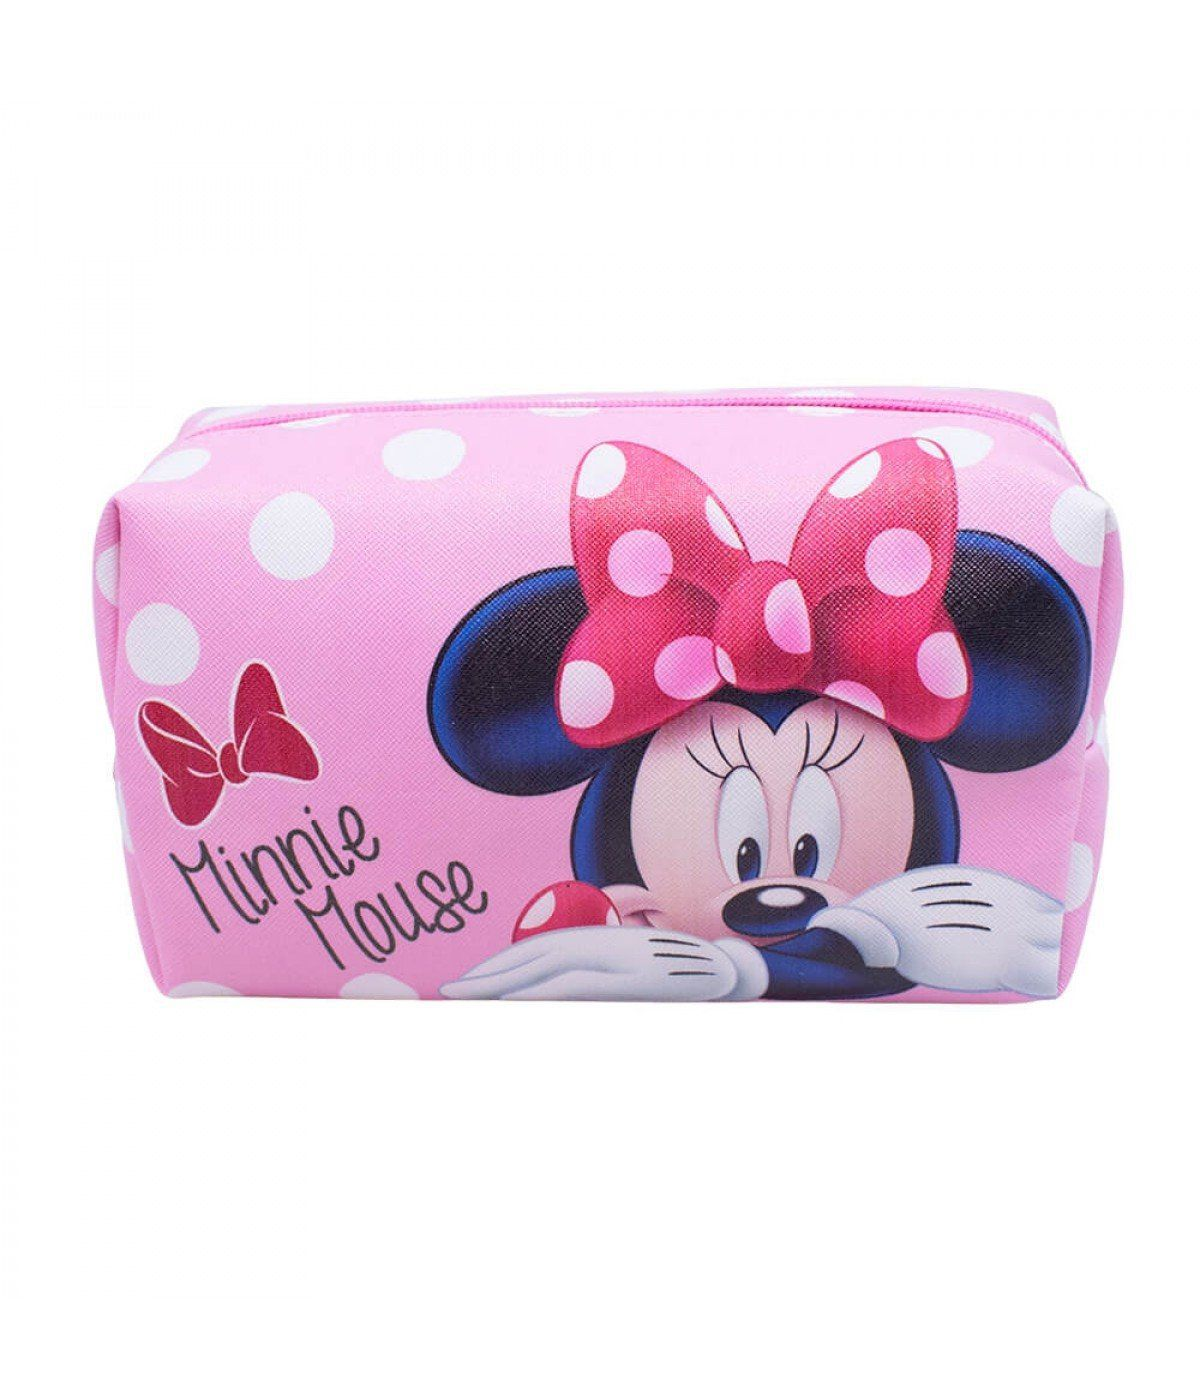 Necessaire Minnie Mouse Rosa e Branco - Disney